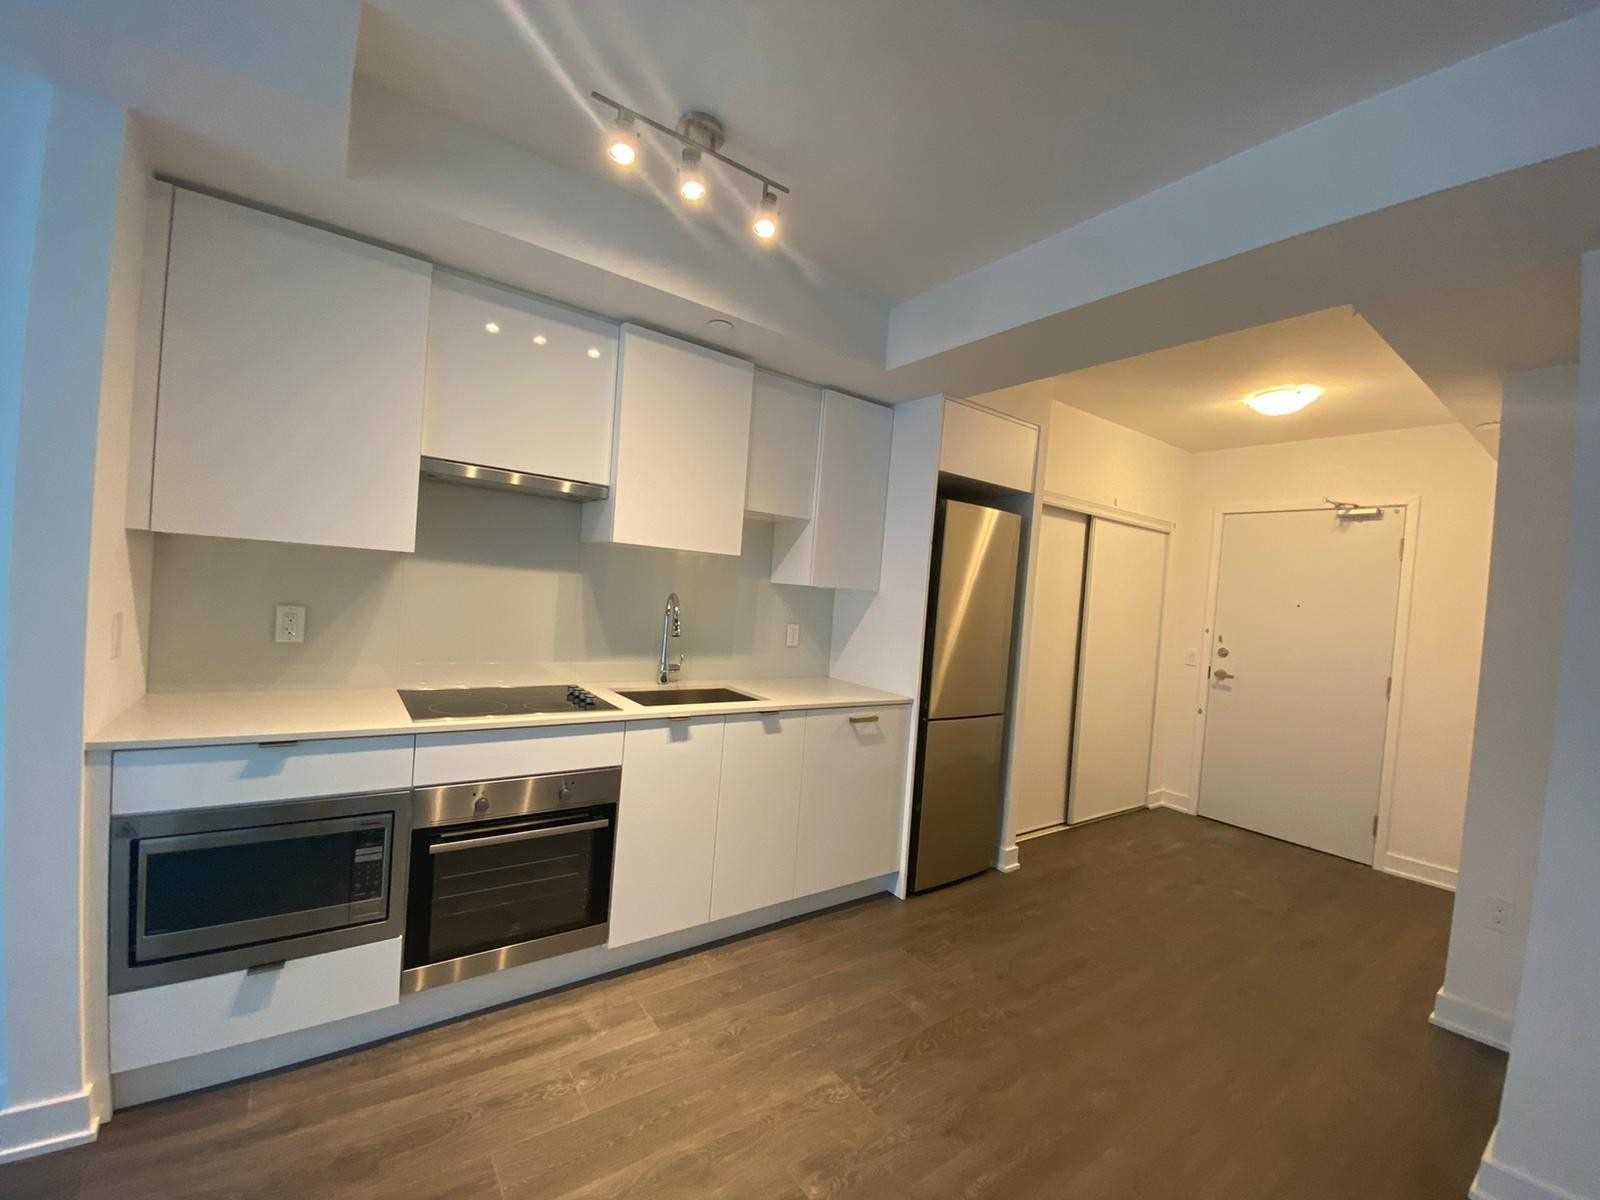 99 Broadway Ave, unit 2007 Nt for rent in Toronto - image #1